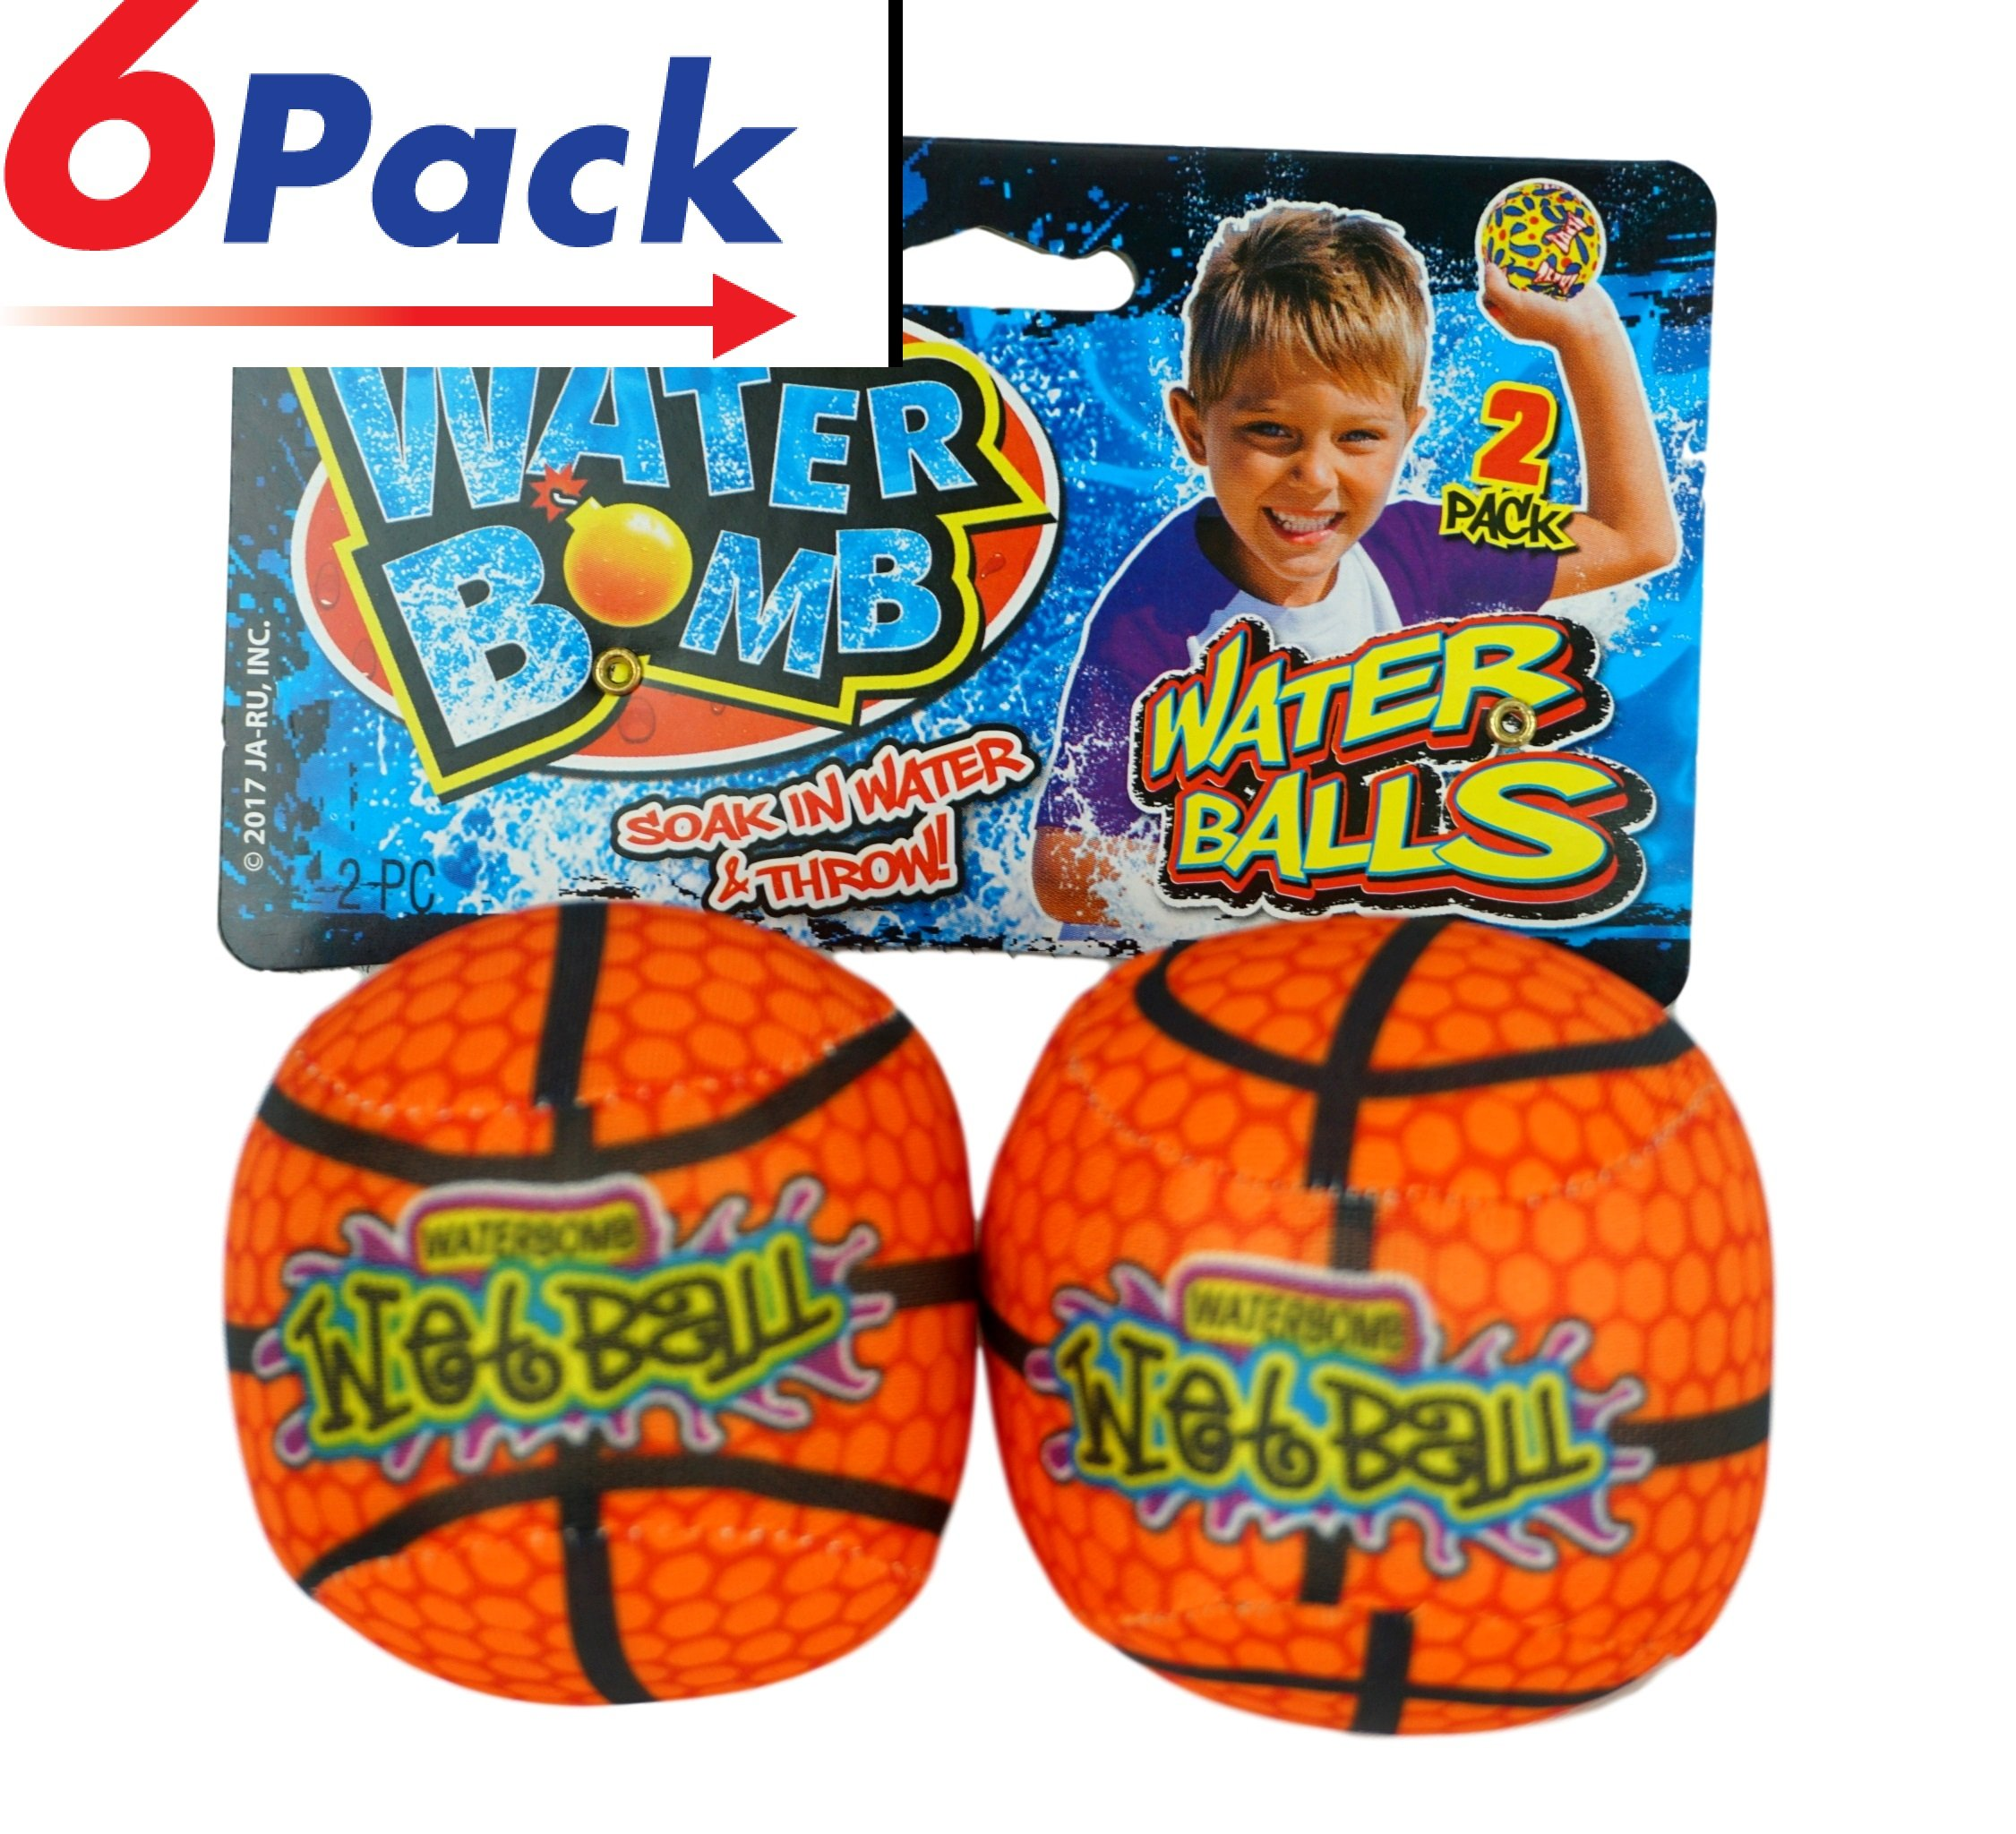 Water Spash Ball (6 Pairs) By JA-RU. Soak and Throw the Bomb. Like water Balloons but Better. | 149-6